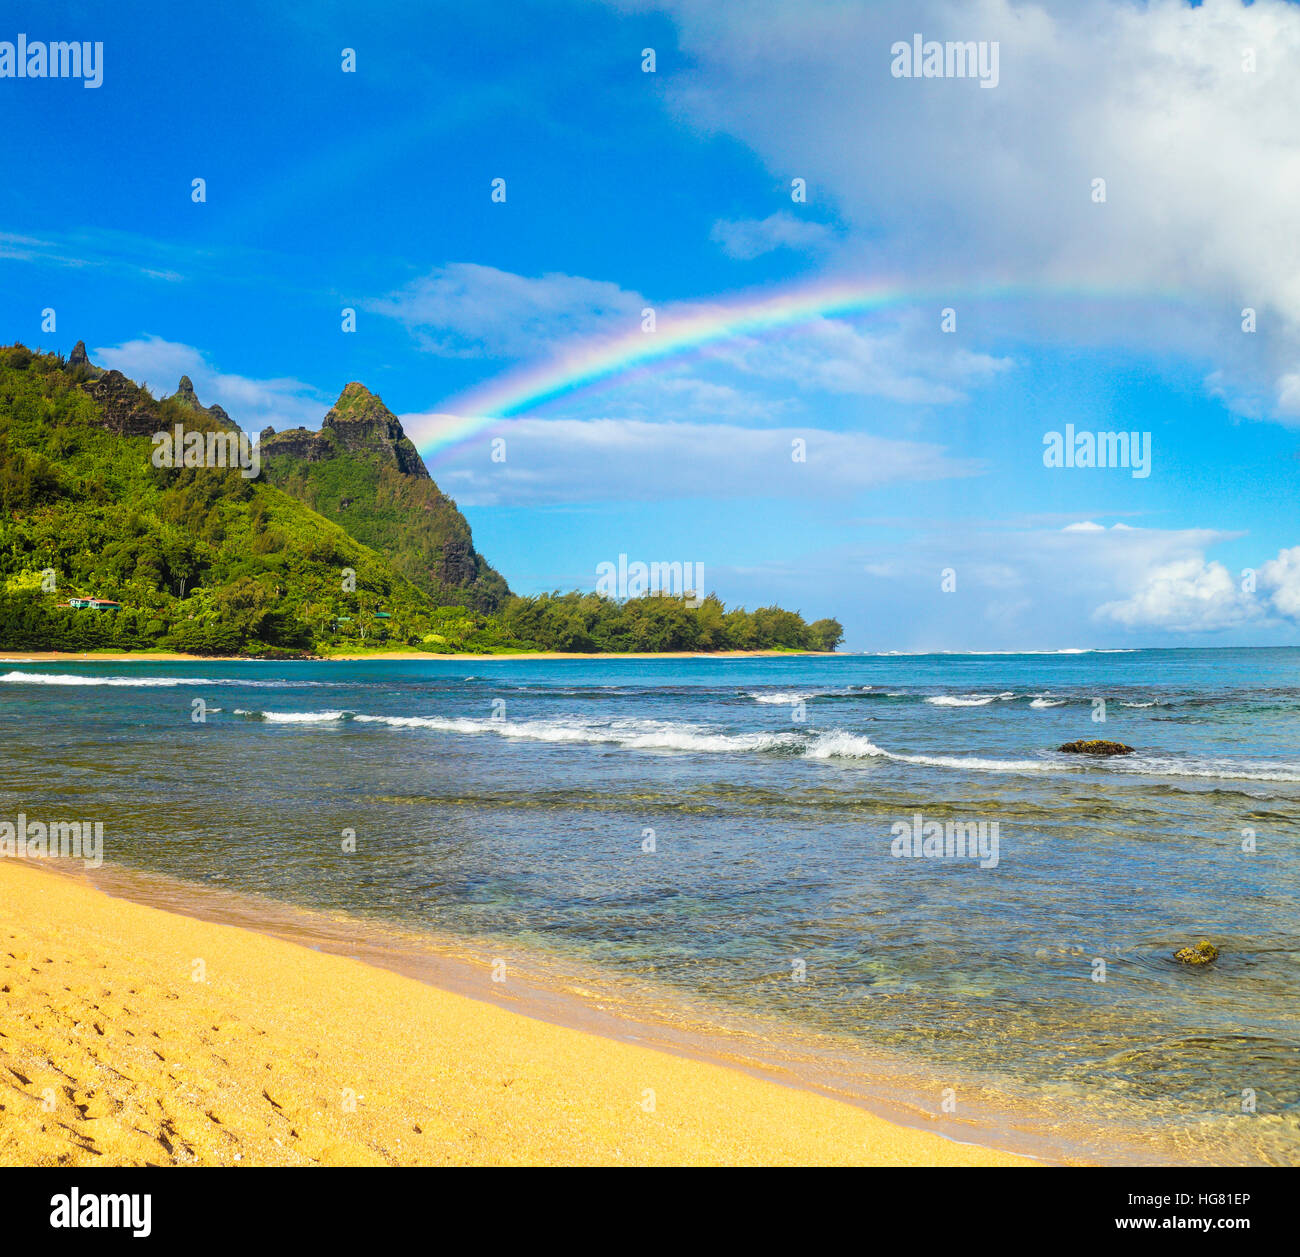 Double rainbows at Mt. Makana, called Bali Hai, in Haena, Kauai - Stock Image